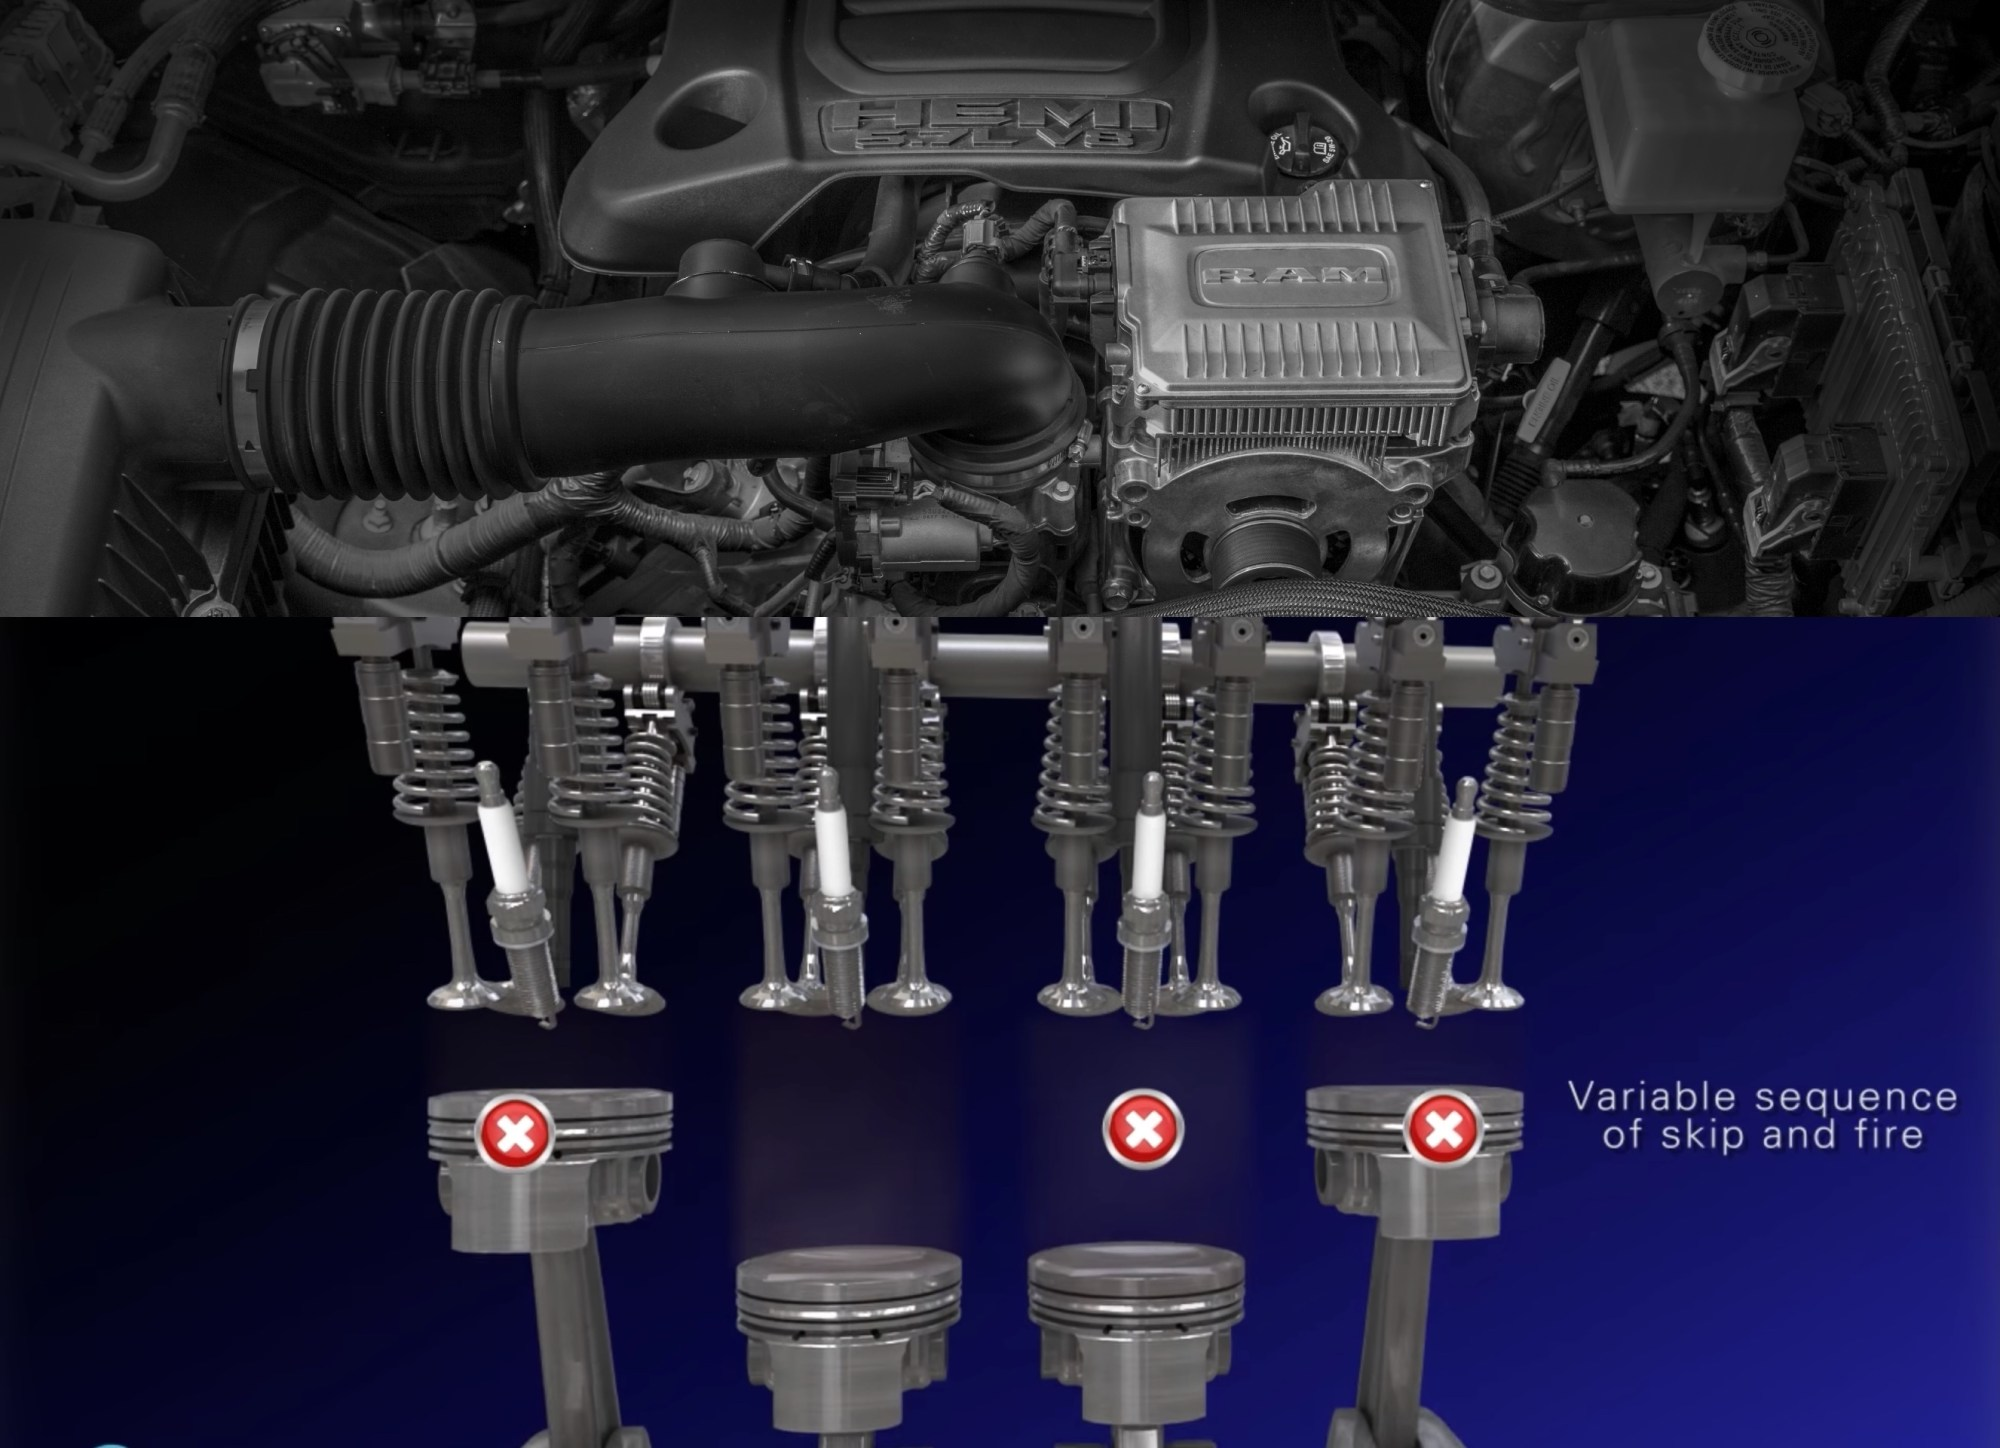 hight resolution of ram 1500 etorque hybrid v8 vs chevy silverado v8 with new cylinder deactivation how they work the fast lane truck